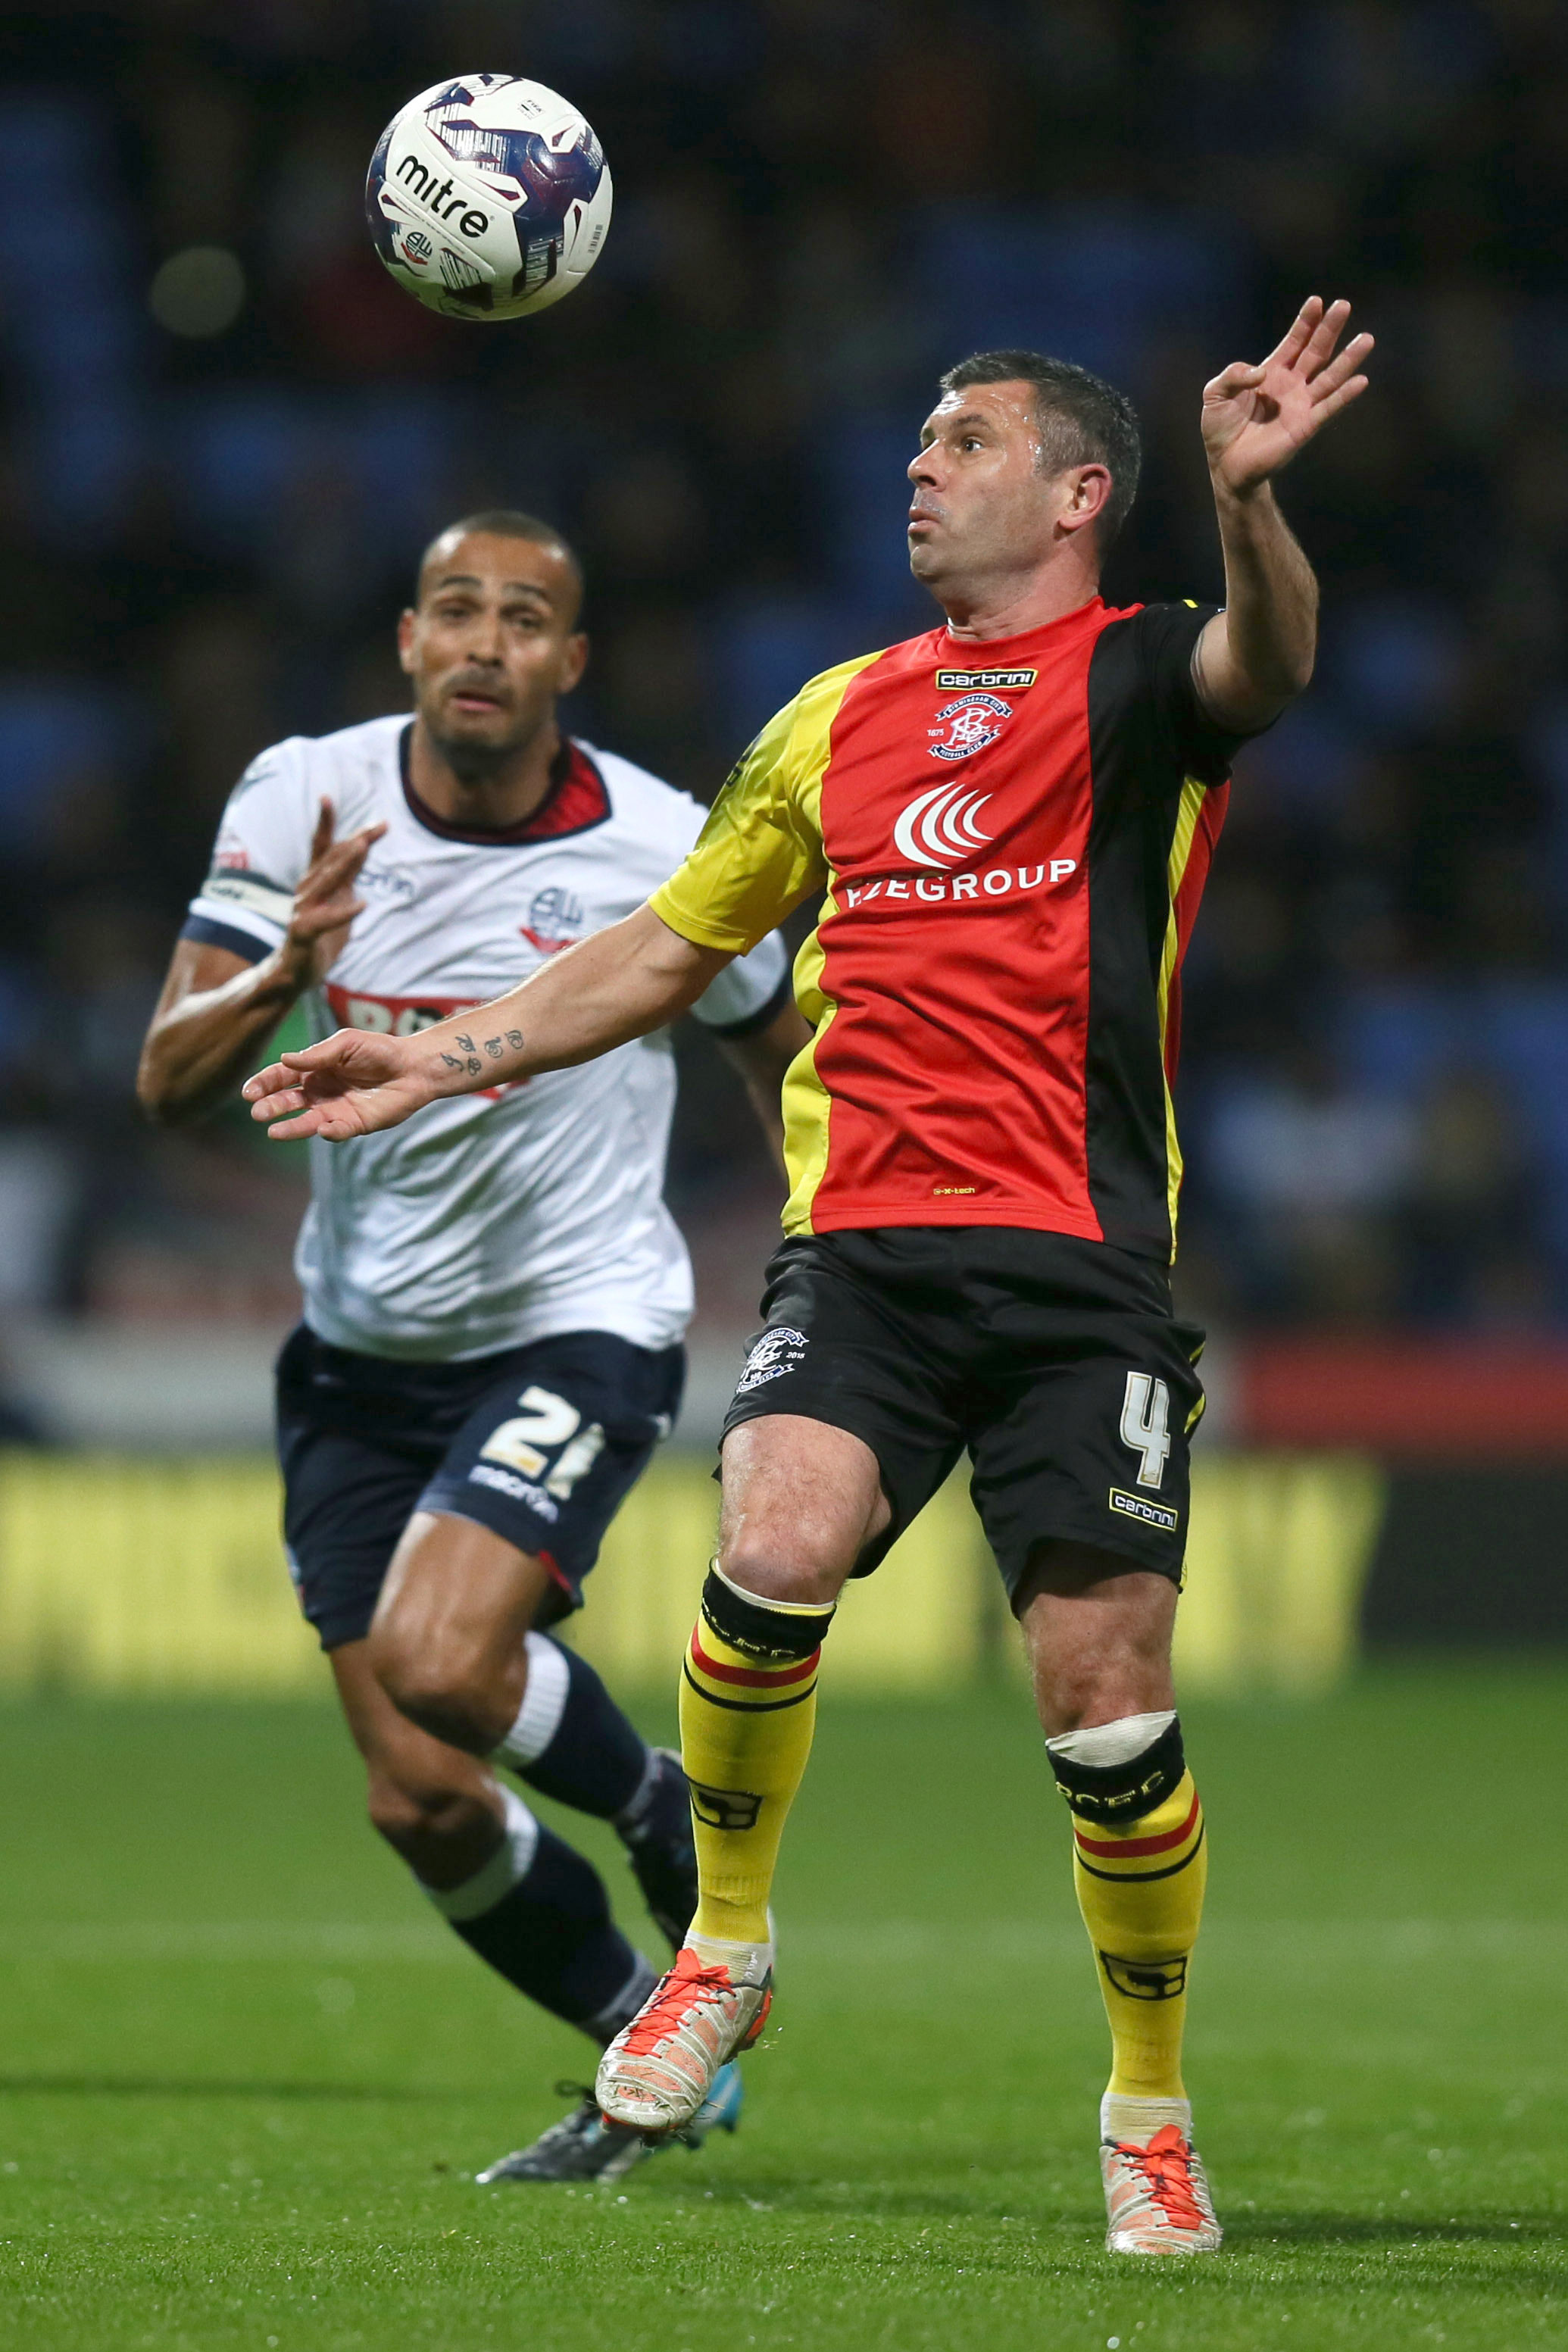 Birmingham City's Paul Robinson and Bolton Wanderers Darren Pratley battle for the ball in 2015